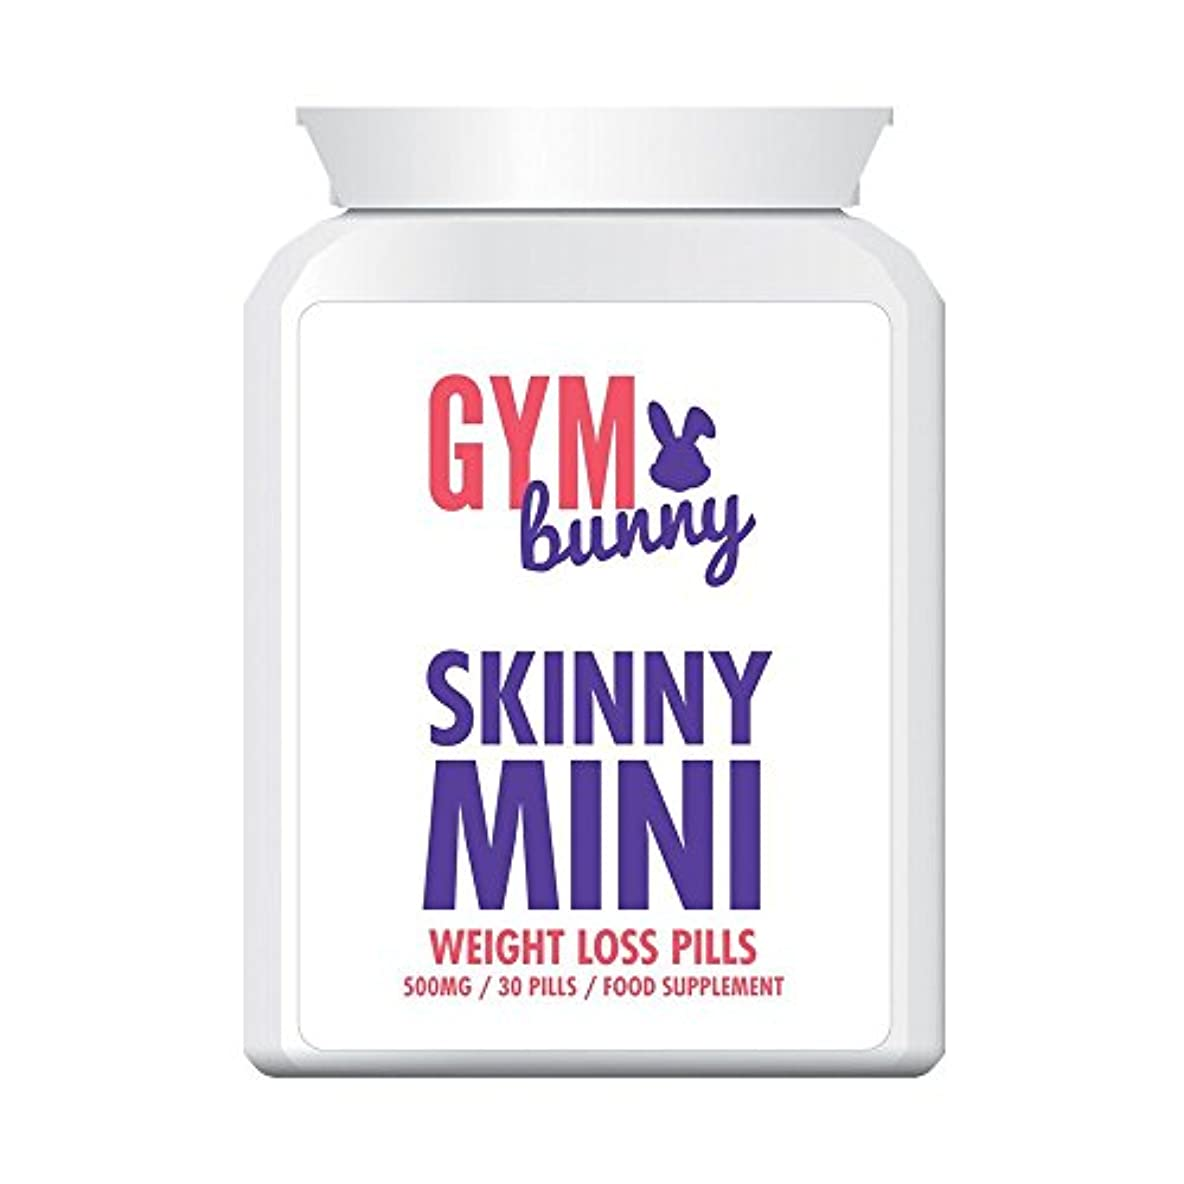 銀行ブラケット基礎GYM BUNNY SKINNY MINI WEIGHT LOSS PILLS減量の丸薬 - ダイエット錠剤は、体重、体脂肪がFAST LOSE Jimu BUNNY SKINNY mini genryō no gan'yaku...